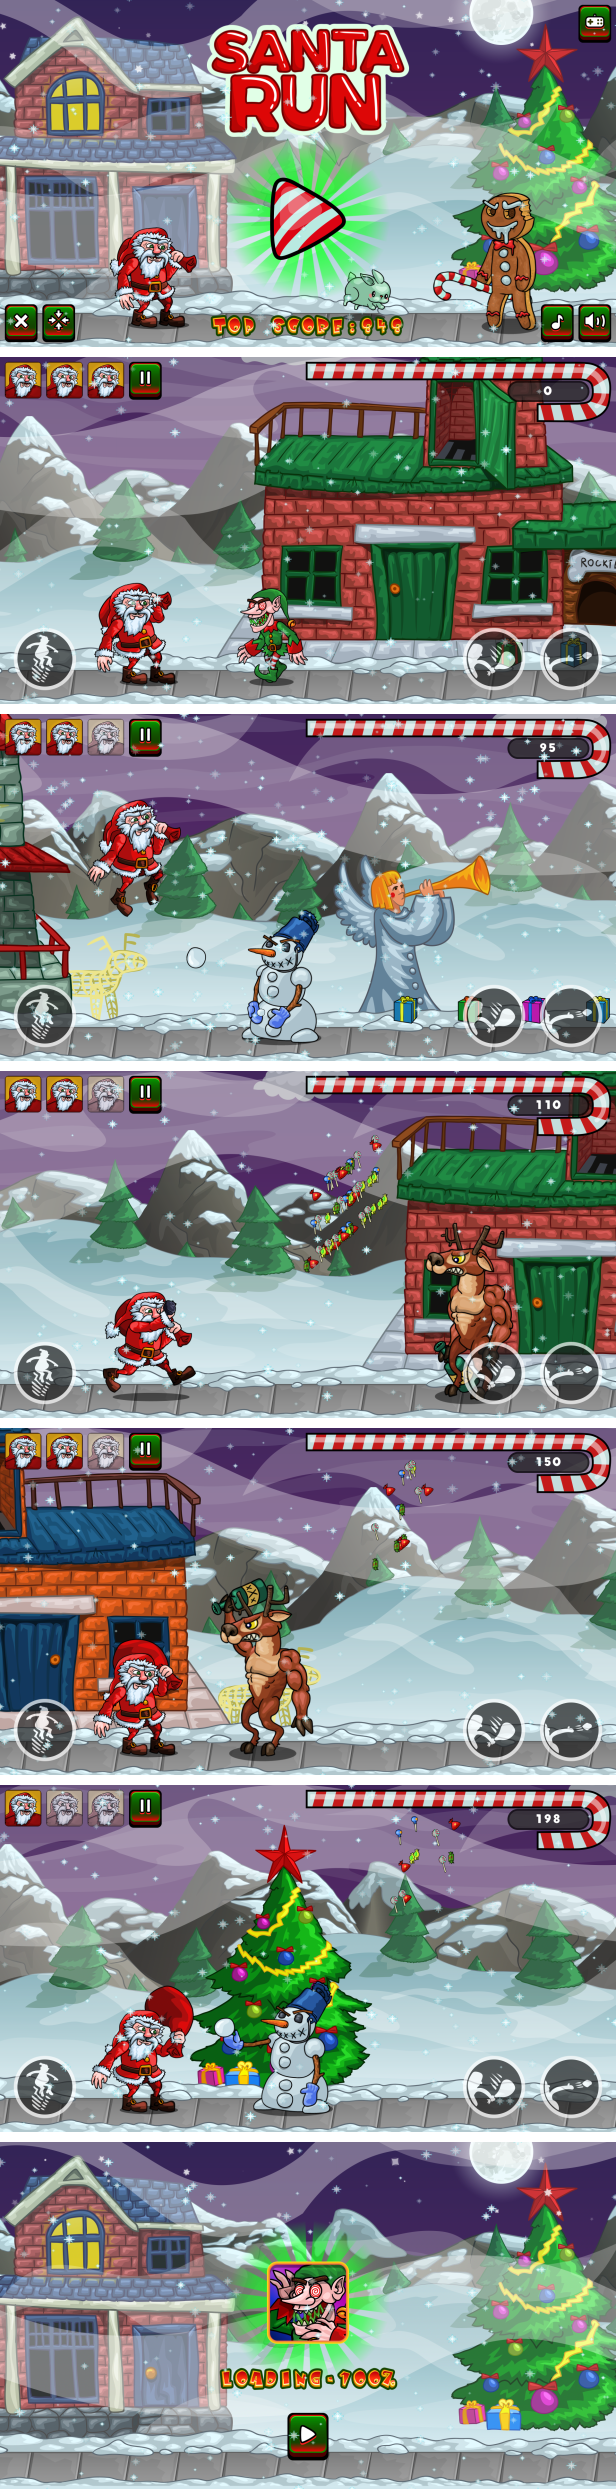 Santa Run - HTML5 Game + Mobile Version! (Construct 3 | Construct 2 | Capx) - 3